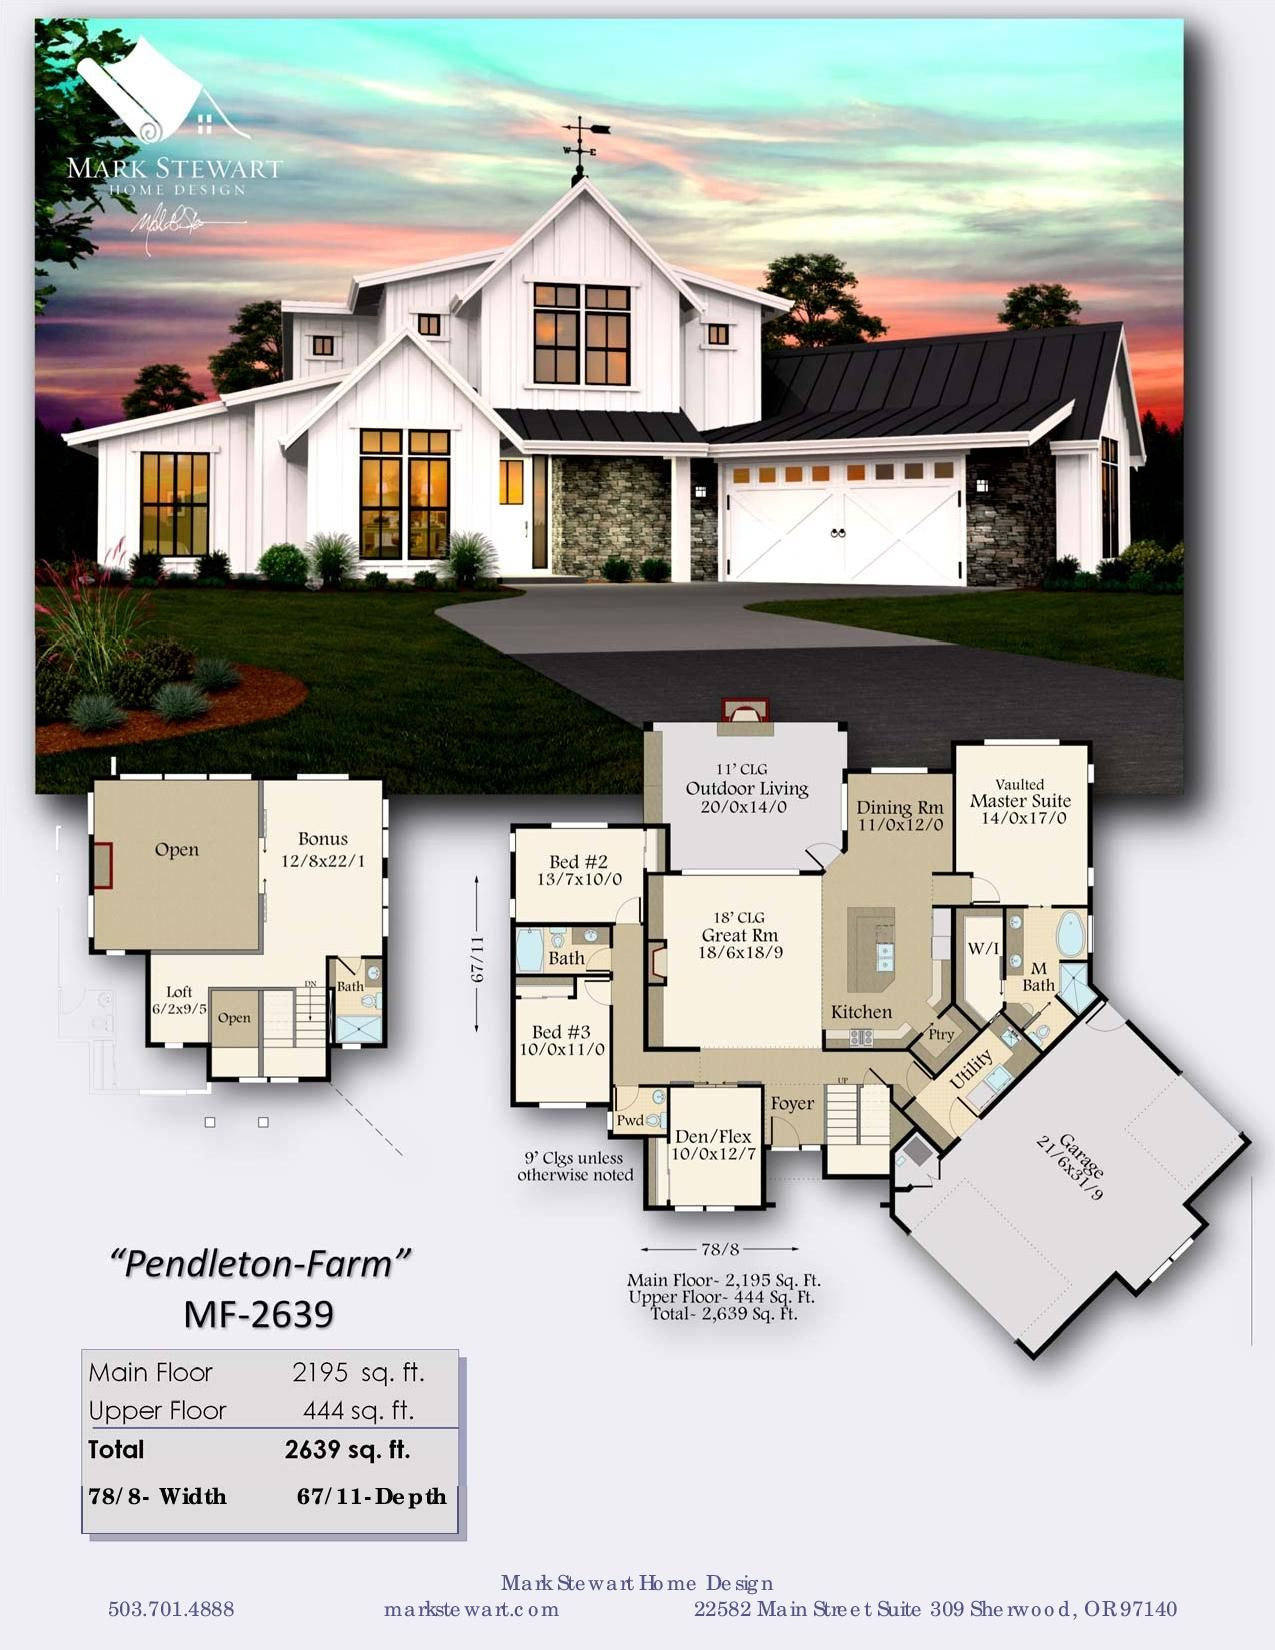 Pendleton By Mark Stewart Home Design Mark Stewart Home Design Is On The Leading Edge Of The Recent Rustic House Plans Farmhouse Style House Farmhouse Plans